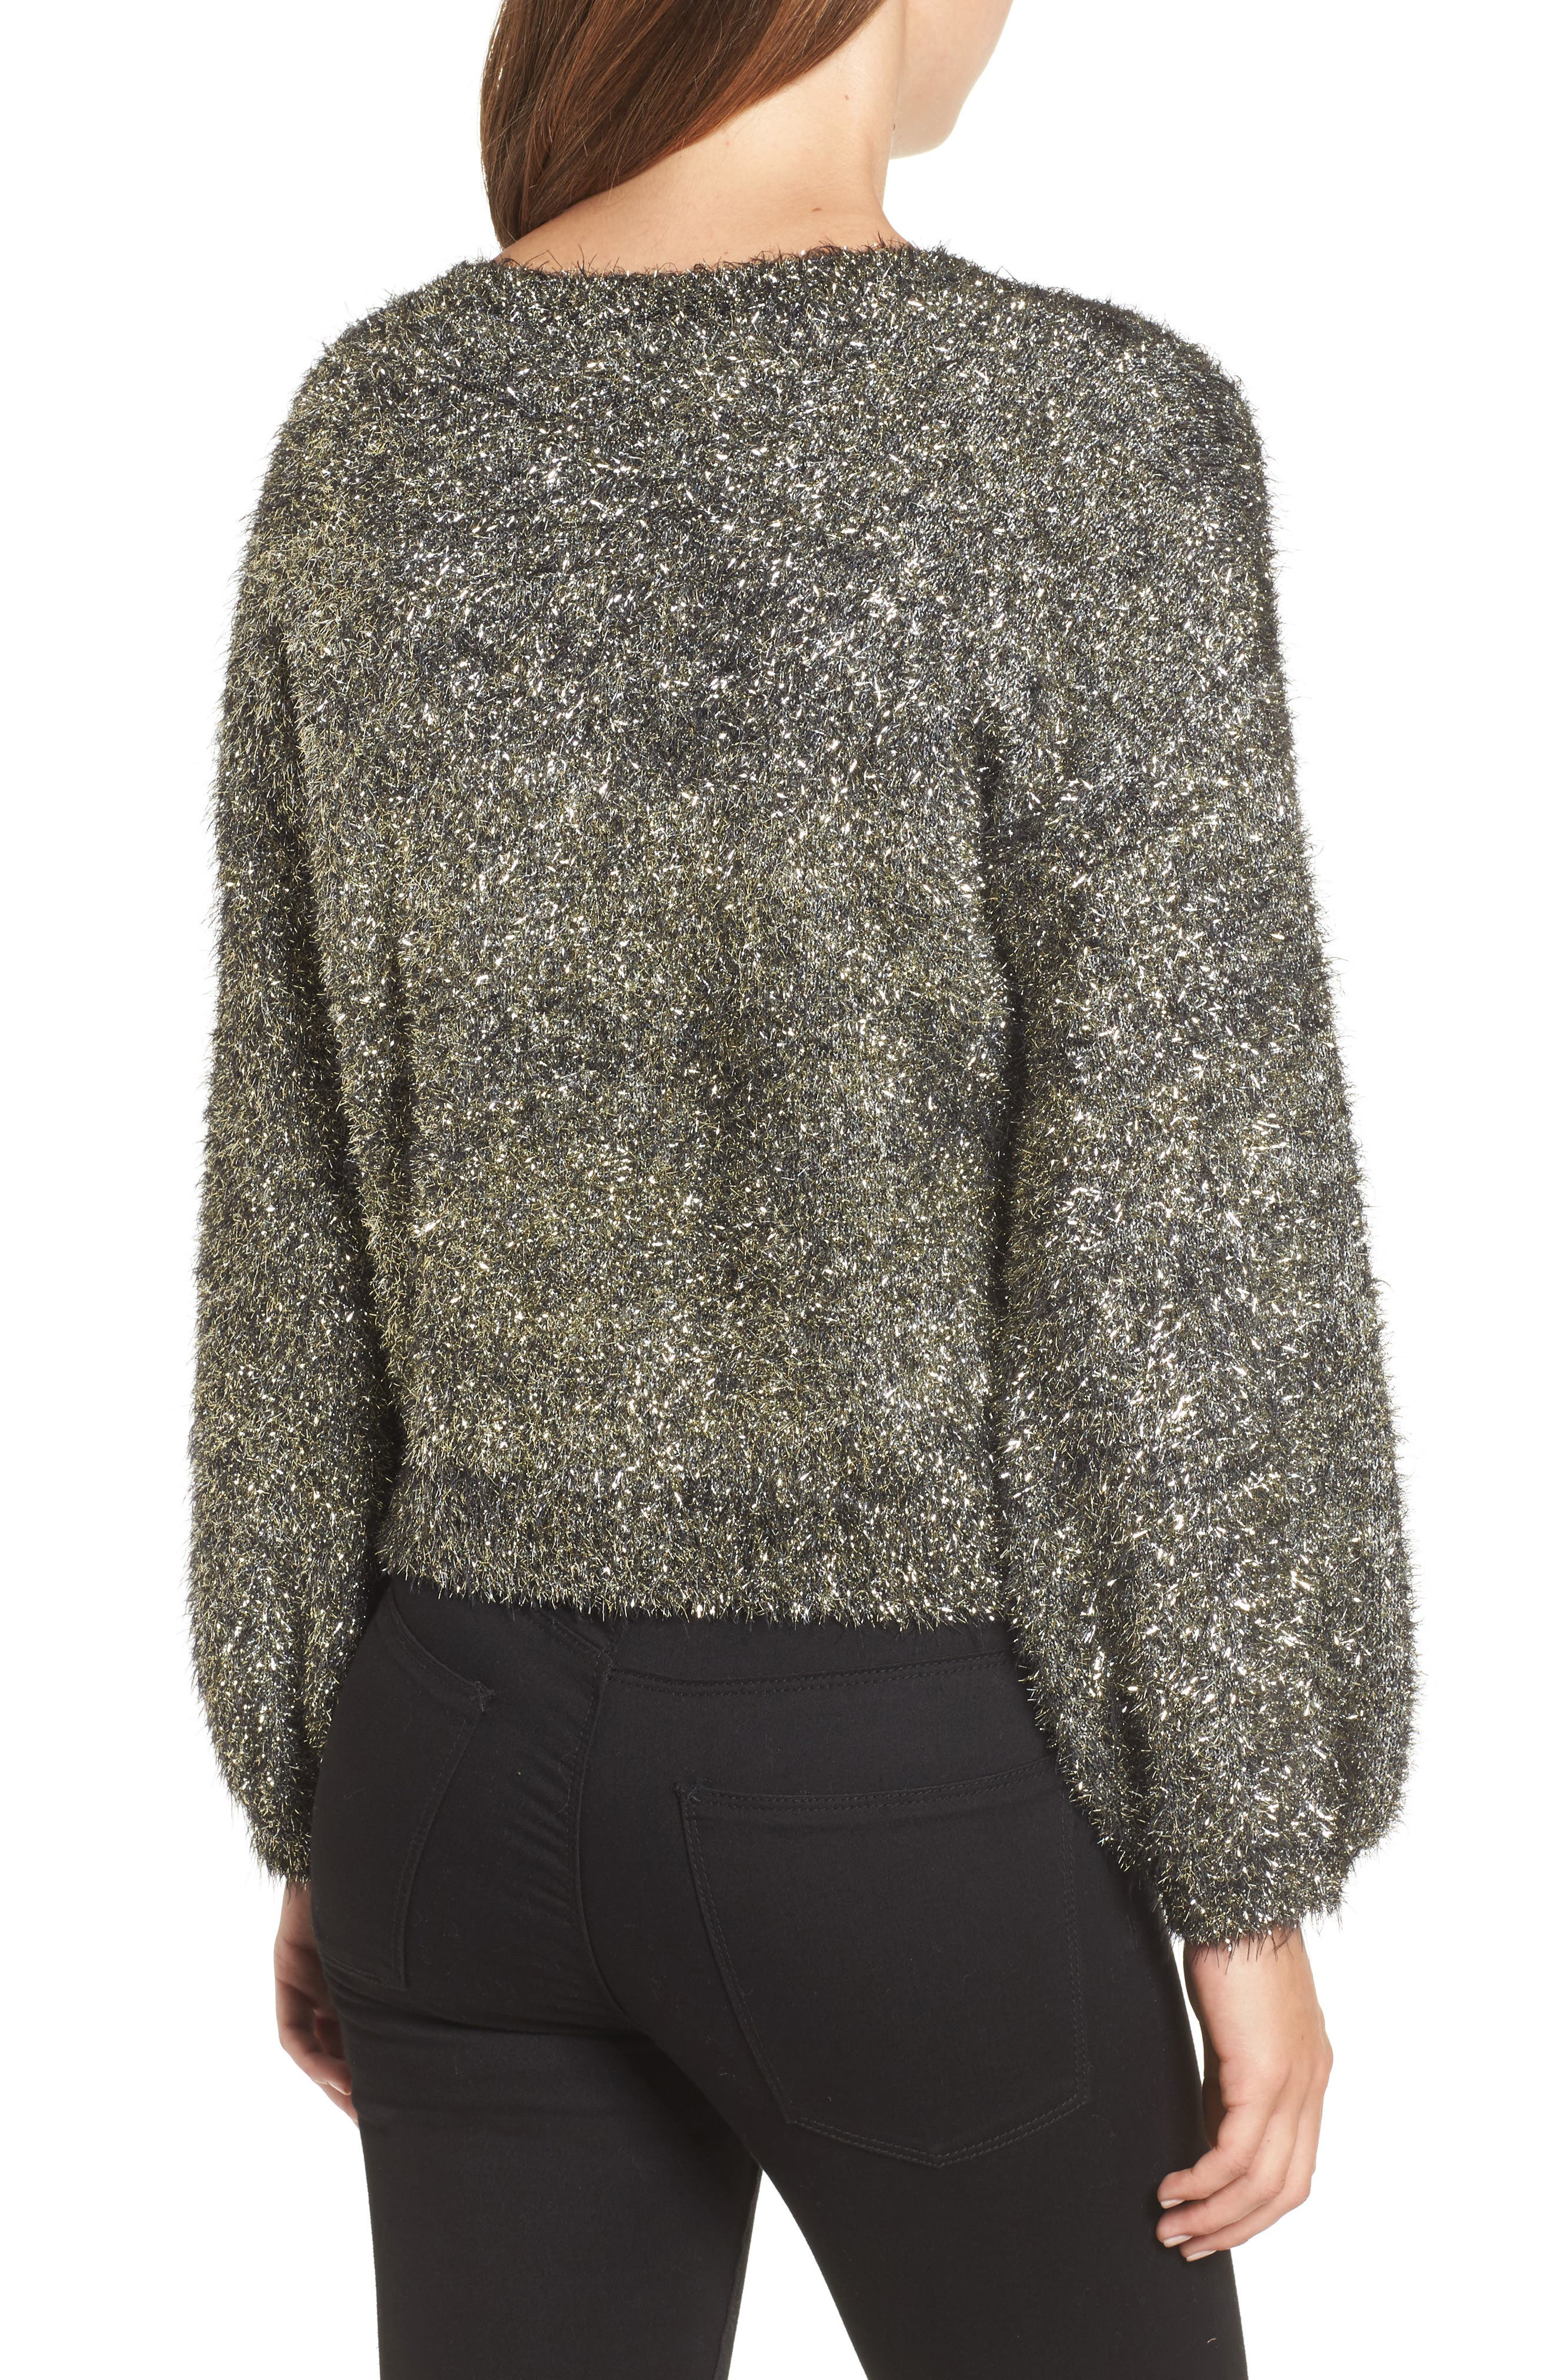 Fluffy Sparkle Sweater,                             Alternate thumbnail 2, color,                             710